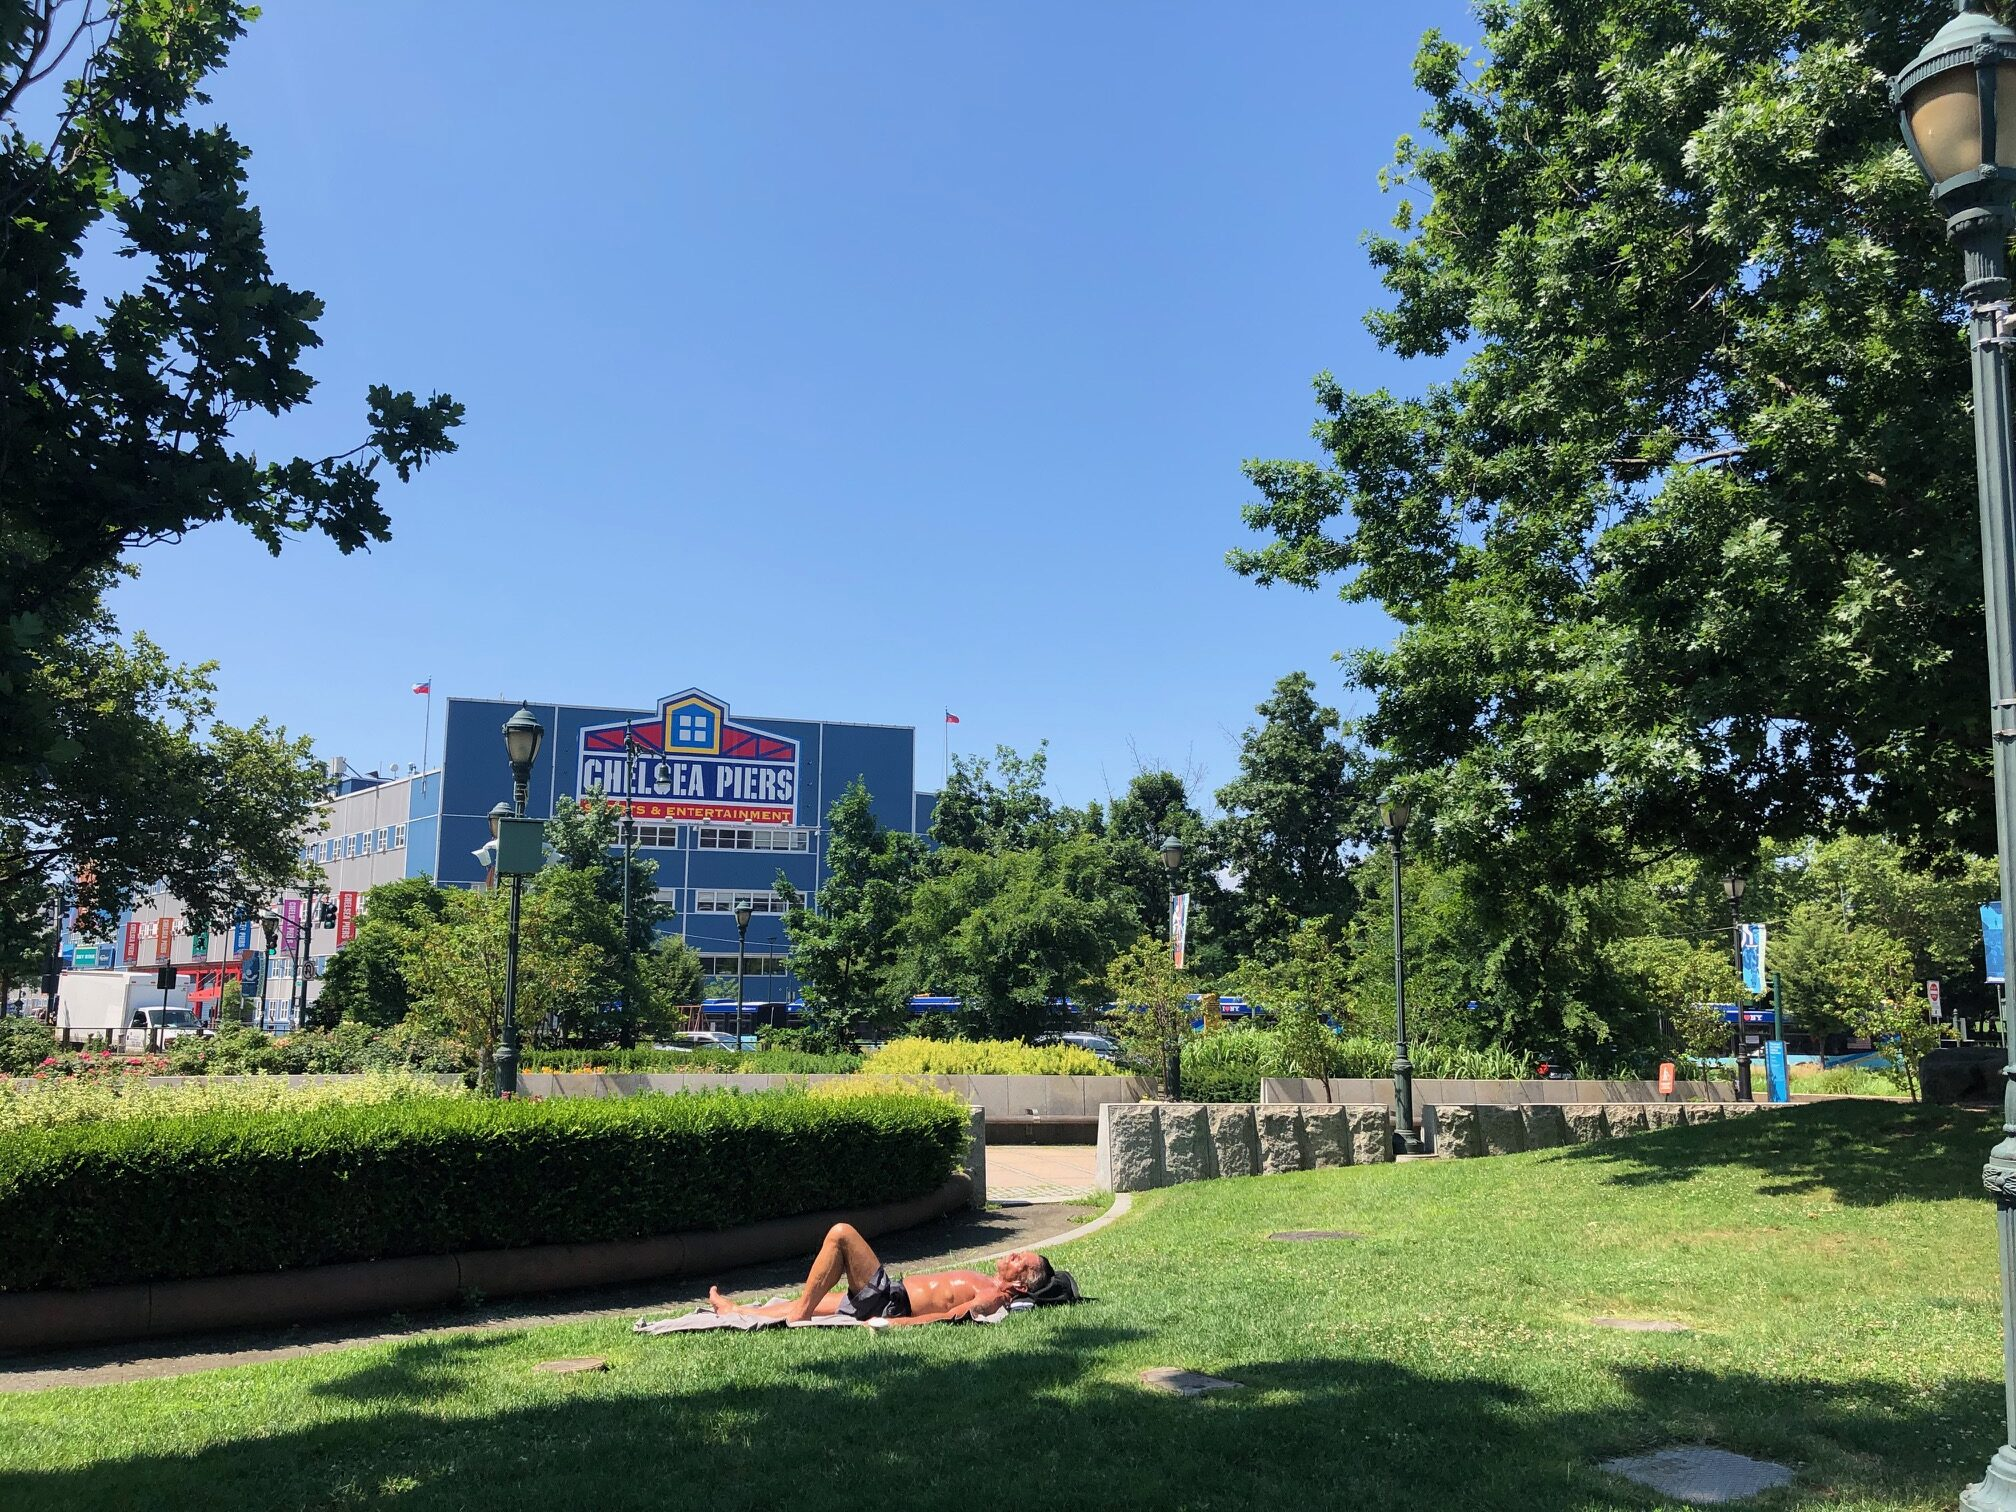 Chelsea Piers building painted blue with the green lawns surrounding it. A sunbather is laying on the grass